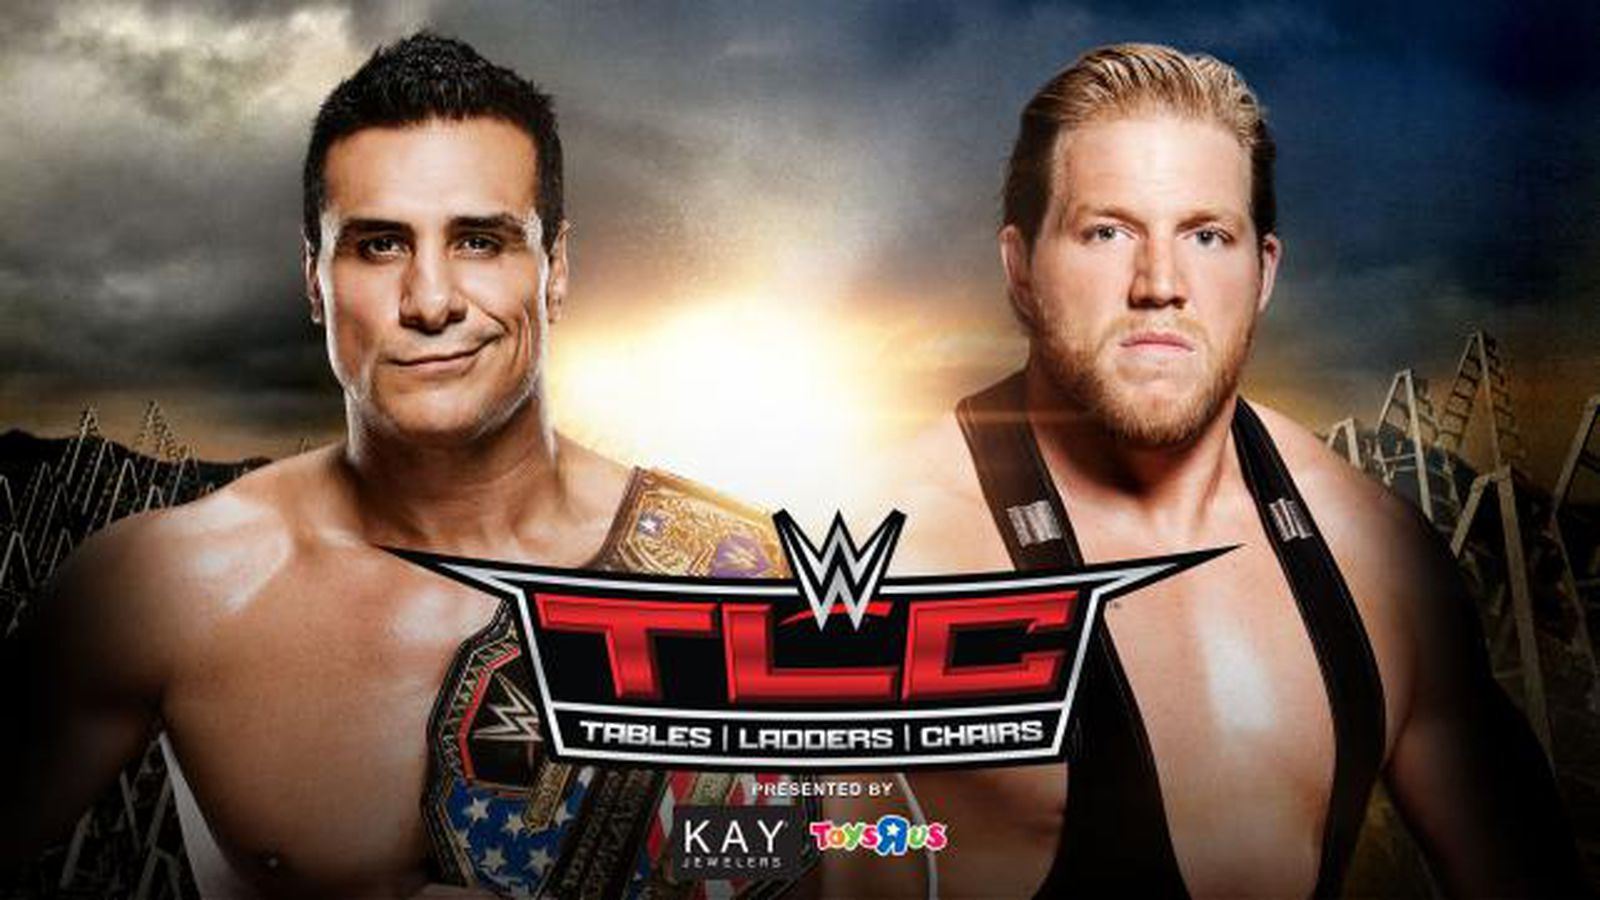 steel chair used in wwe lay down beach chairs tlc 2015 jack swagger vs alberto del rio full match